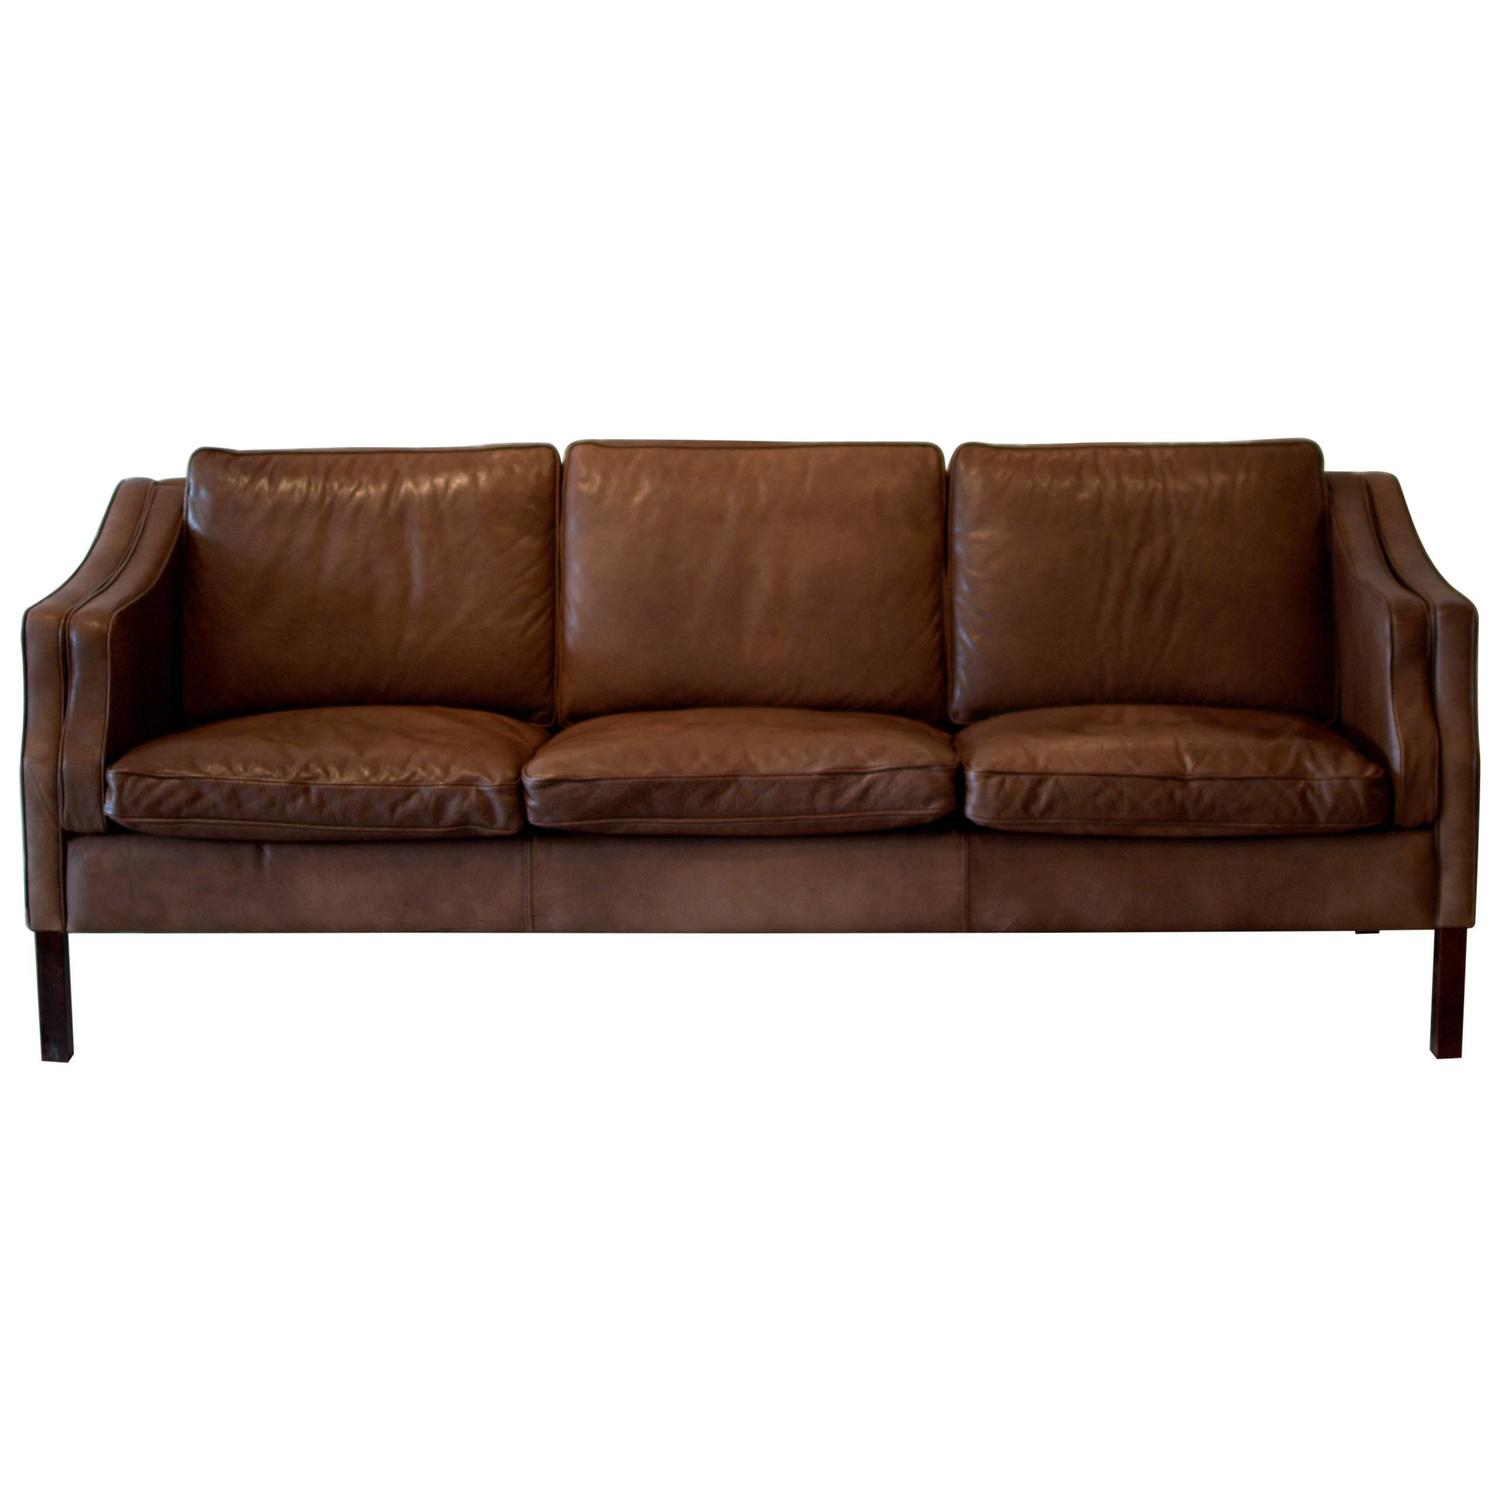 Retro Brown Leather Sofa Retro Thams Brown Leather 3 Seater Sofa Vintage Vintage Brown